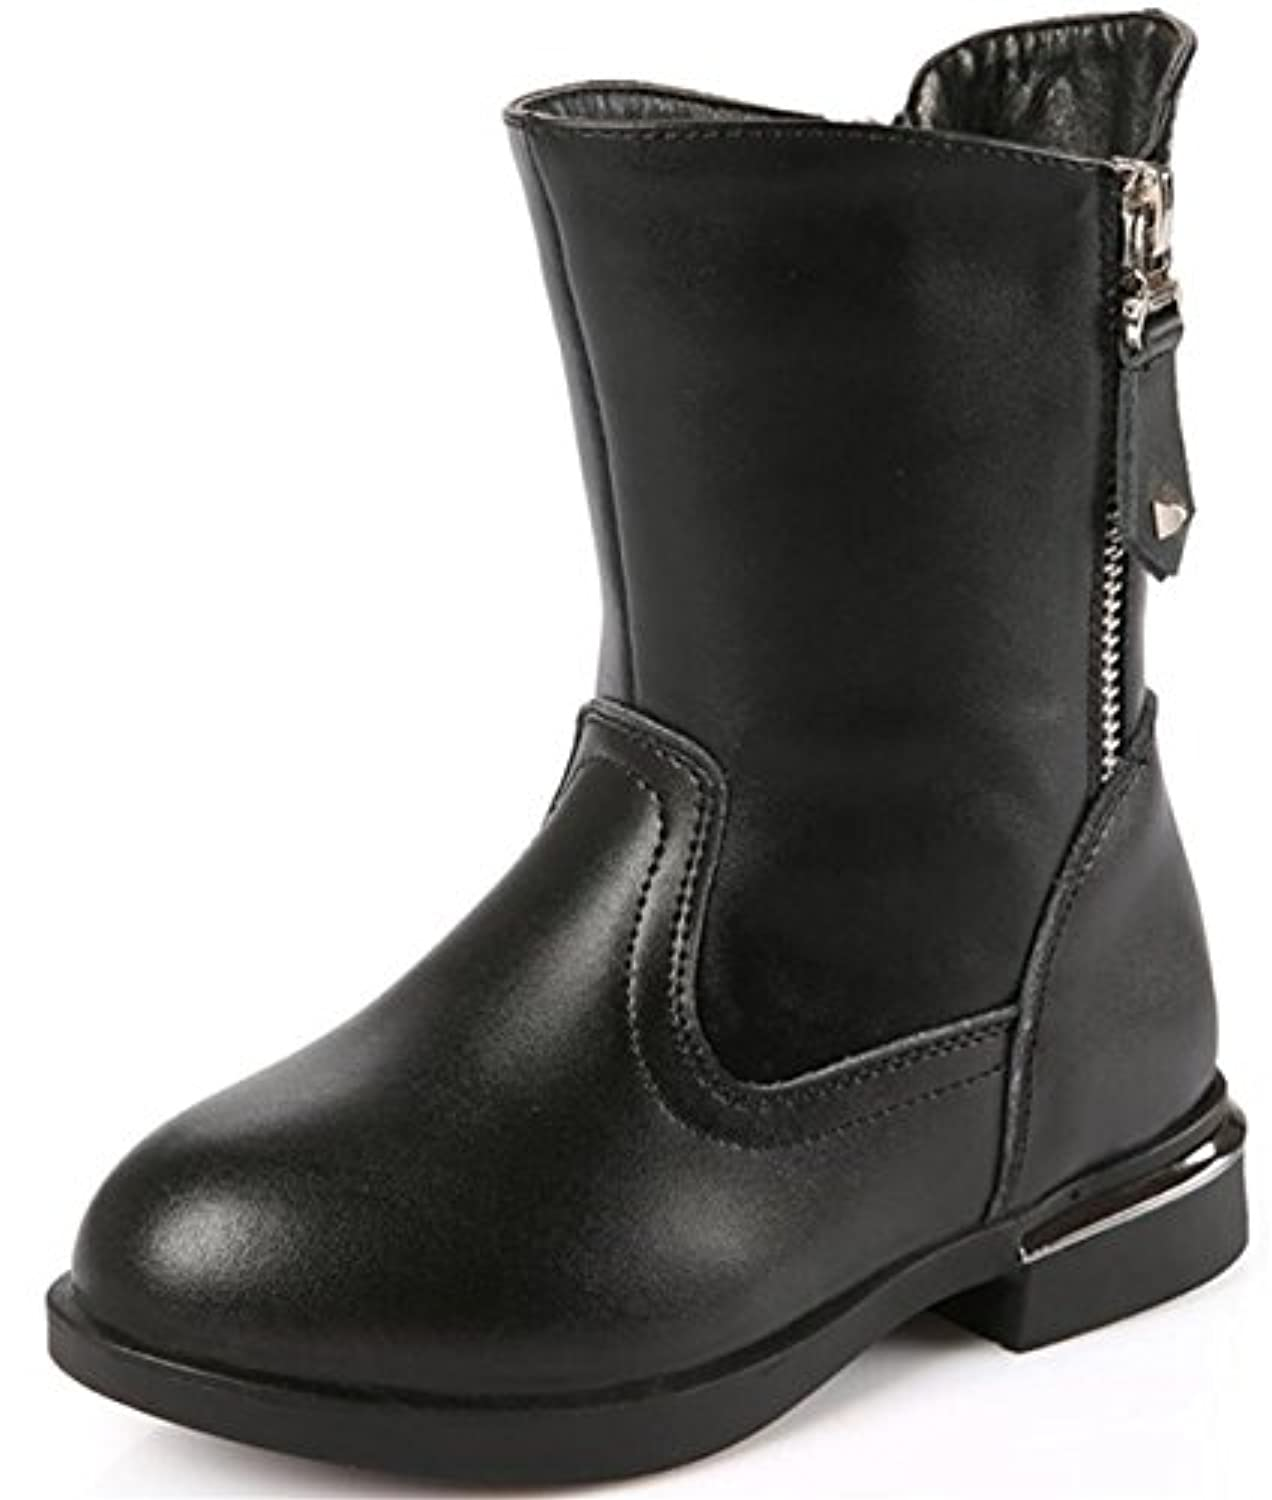 PPXID Girl's Leather Side Zip Warm Ankle Boots-Black Junior 1.5 UK Size